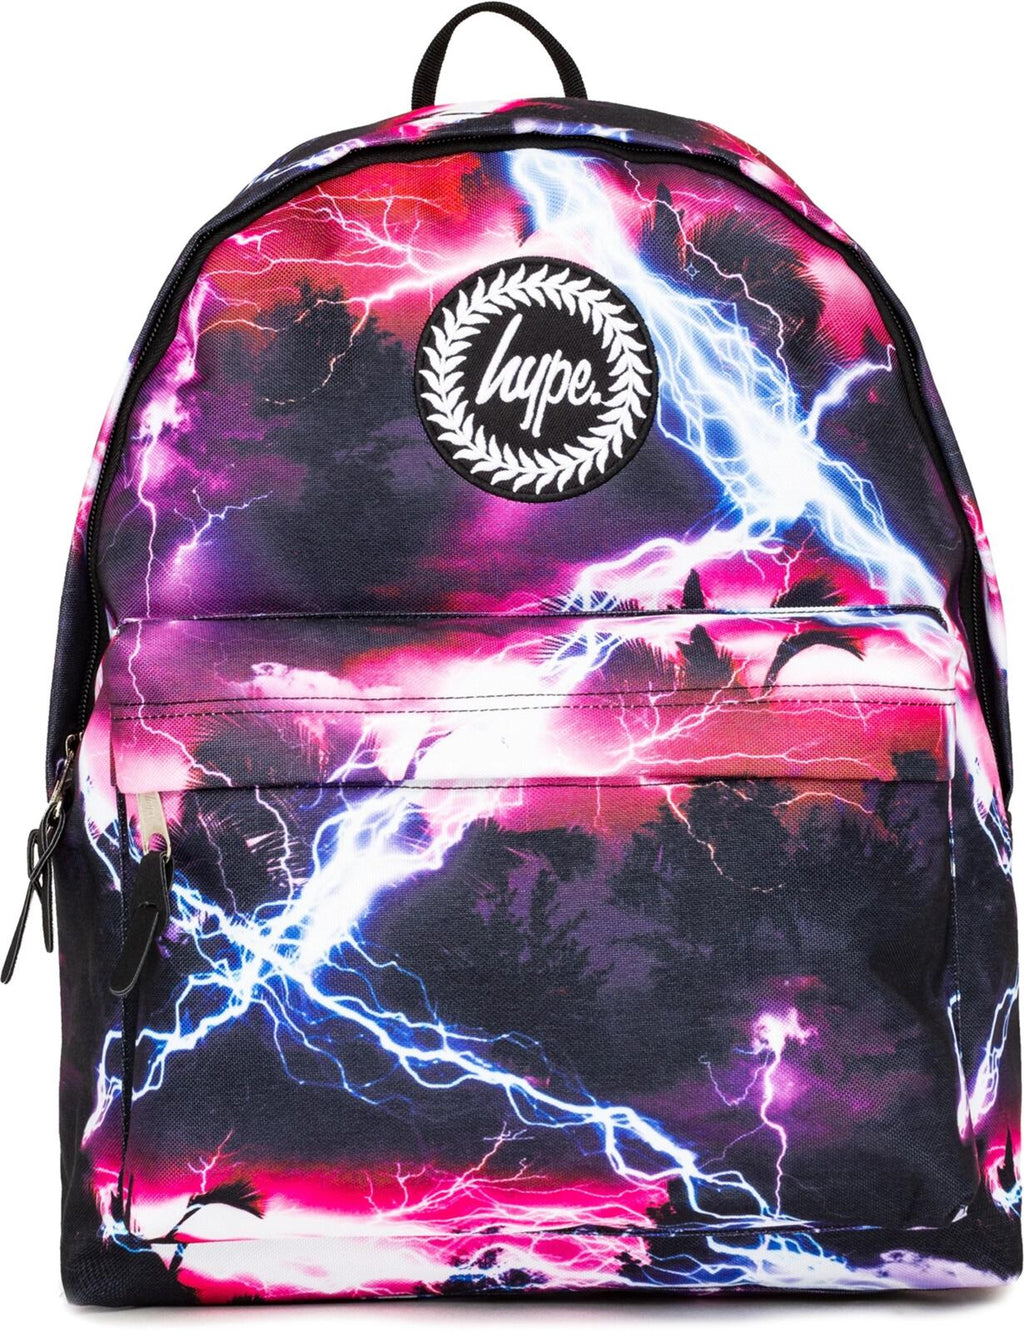 Hype Tropic Storm Backpack Bag Multi